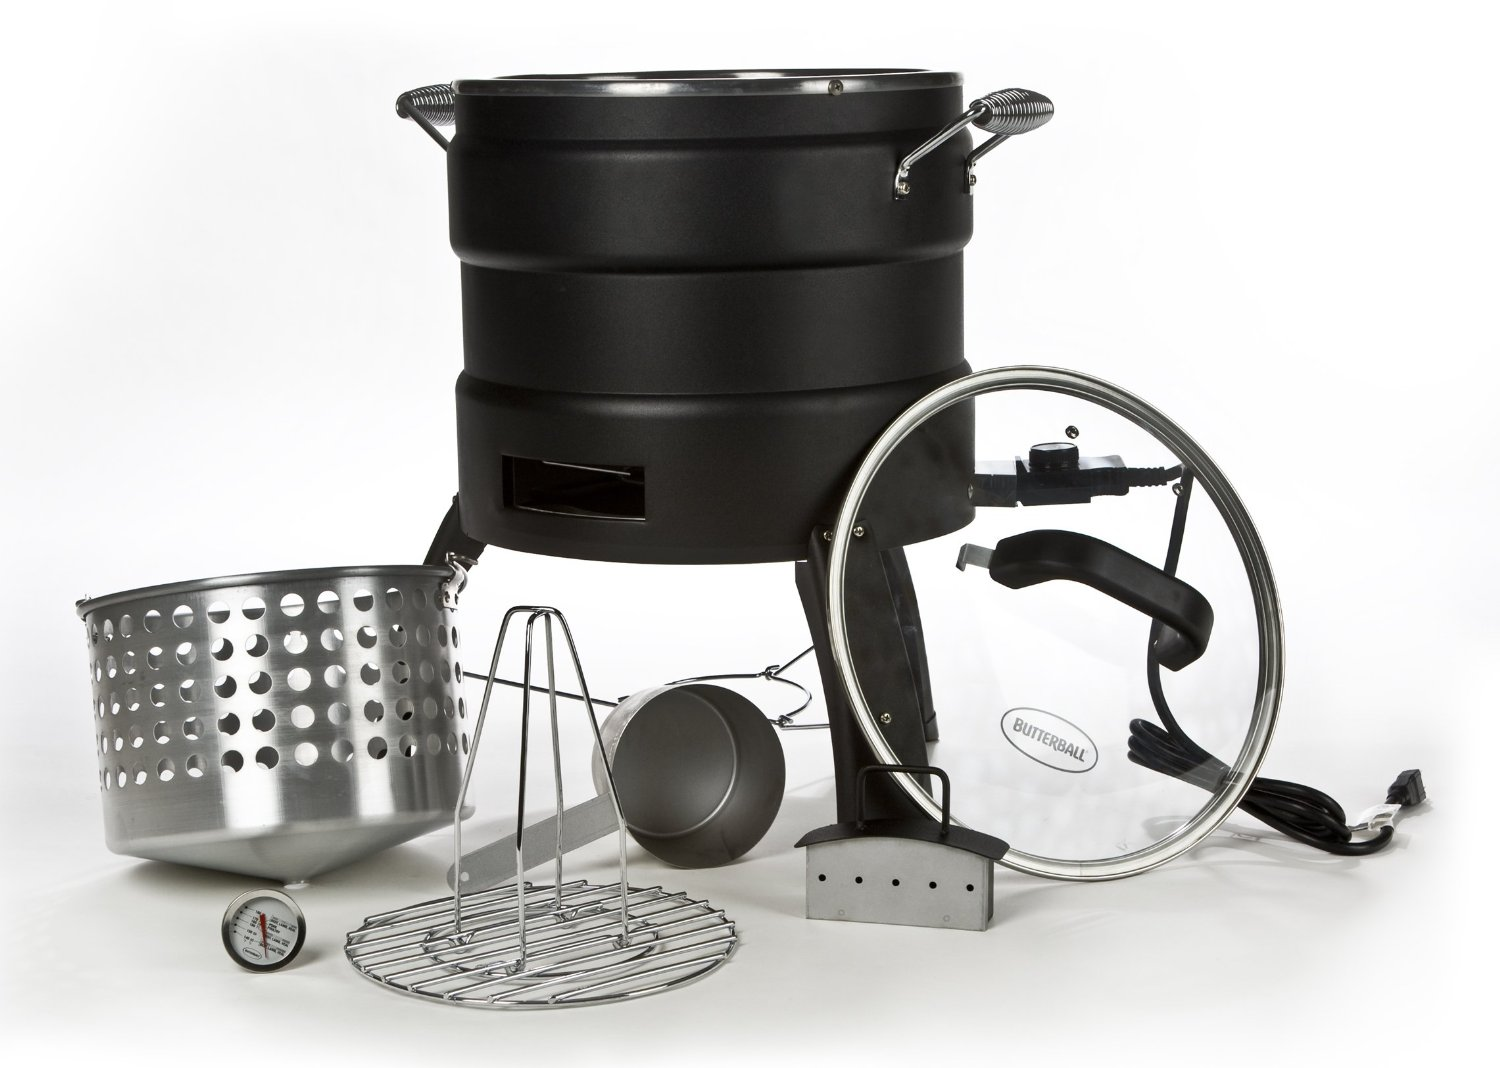 Butterball Oil Less Turkey Fryer accessories